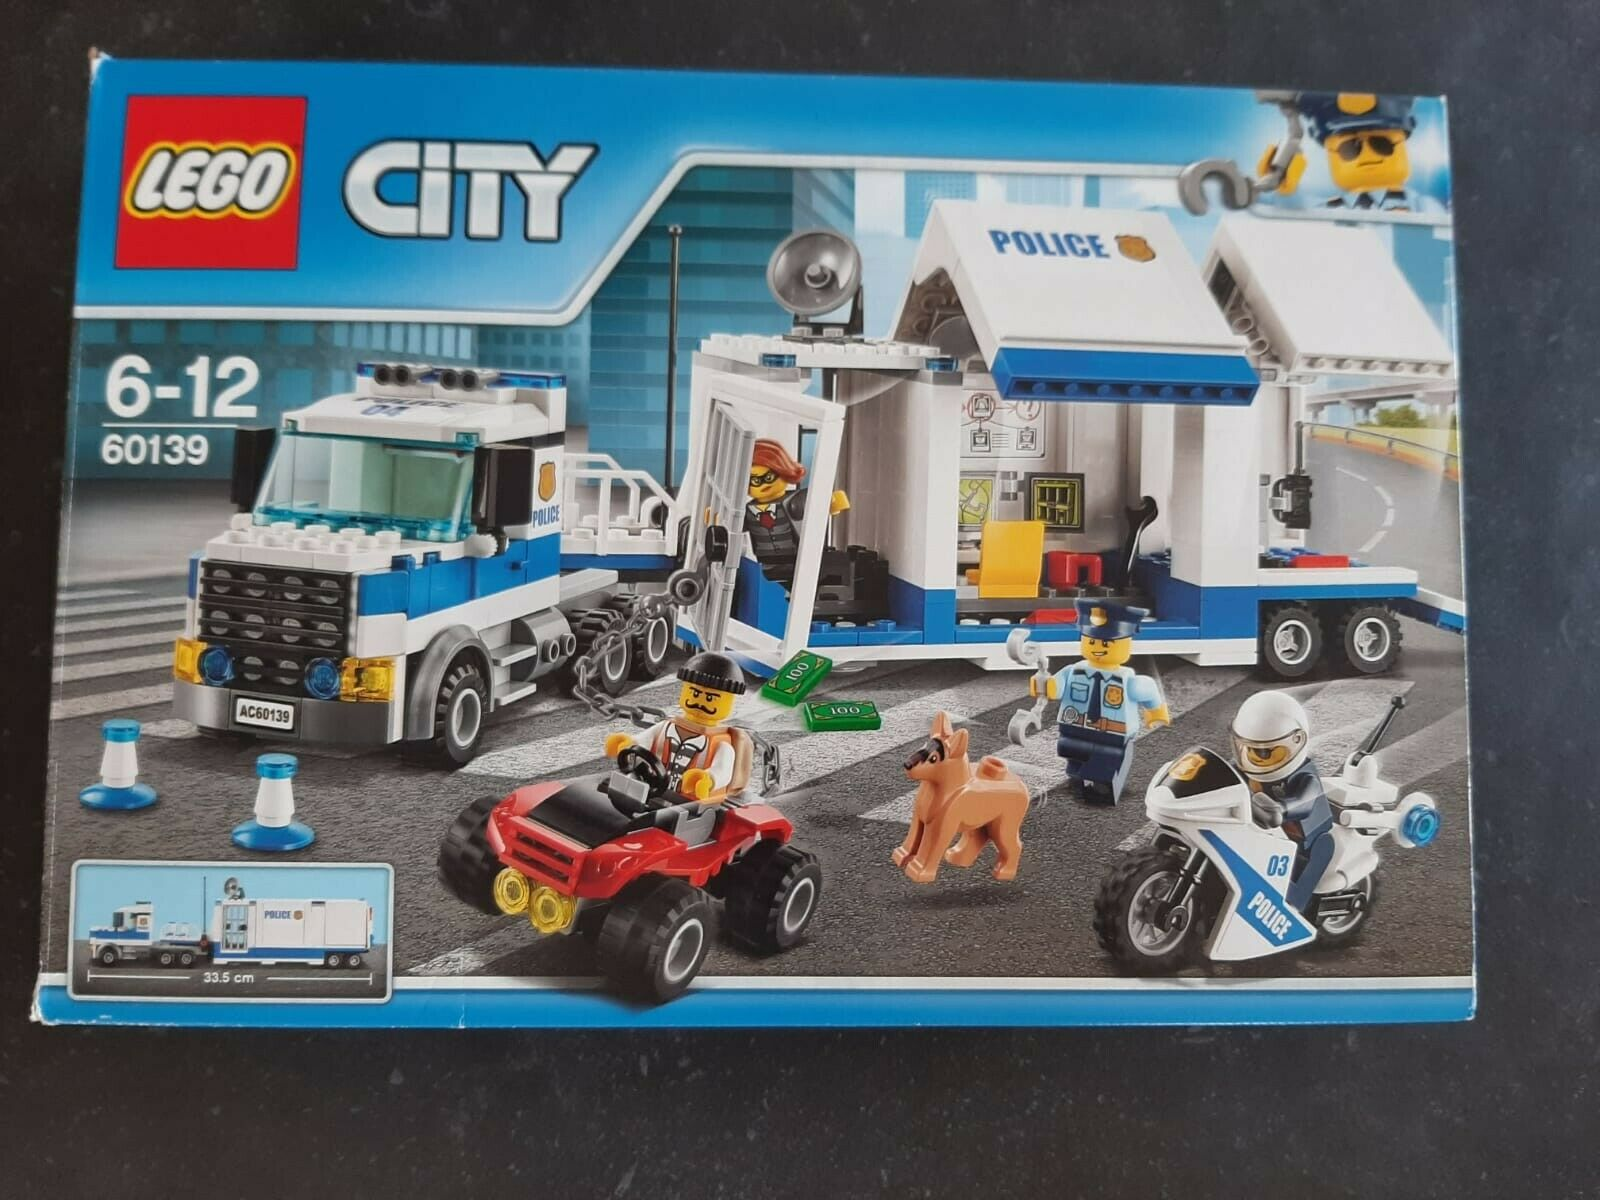 LEGO City Police Mobile Comhommed Center  60139 set (100% complete in box)  prix raisonnable